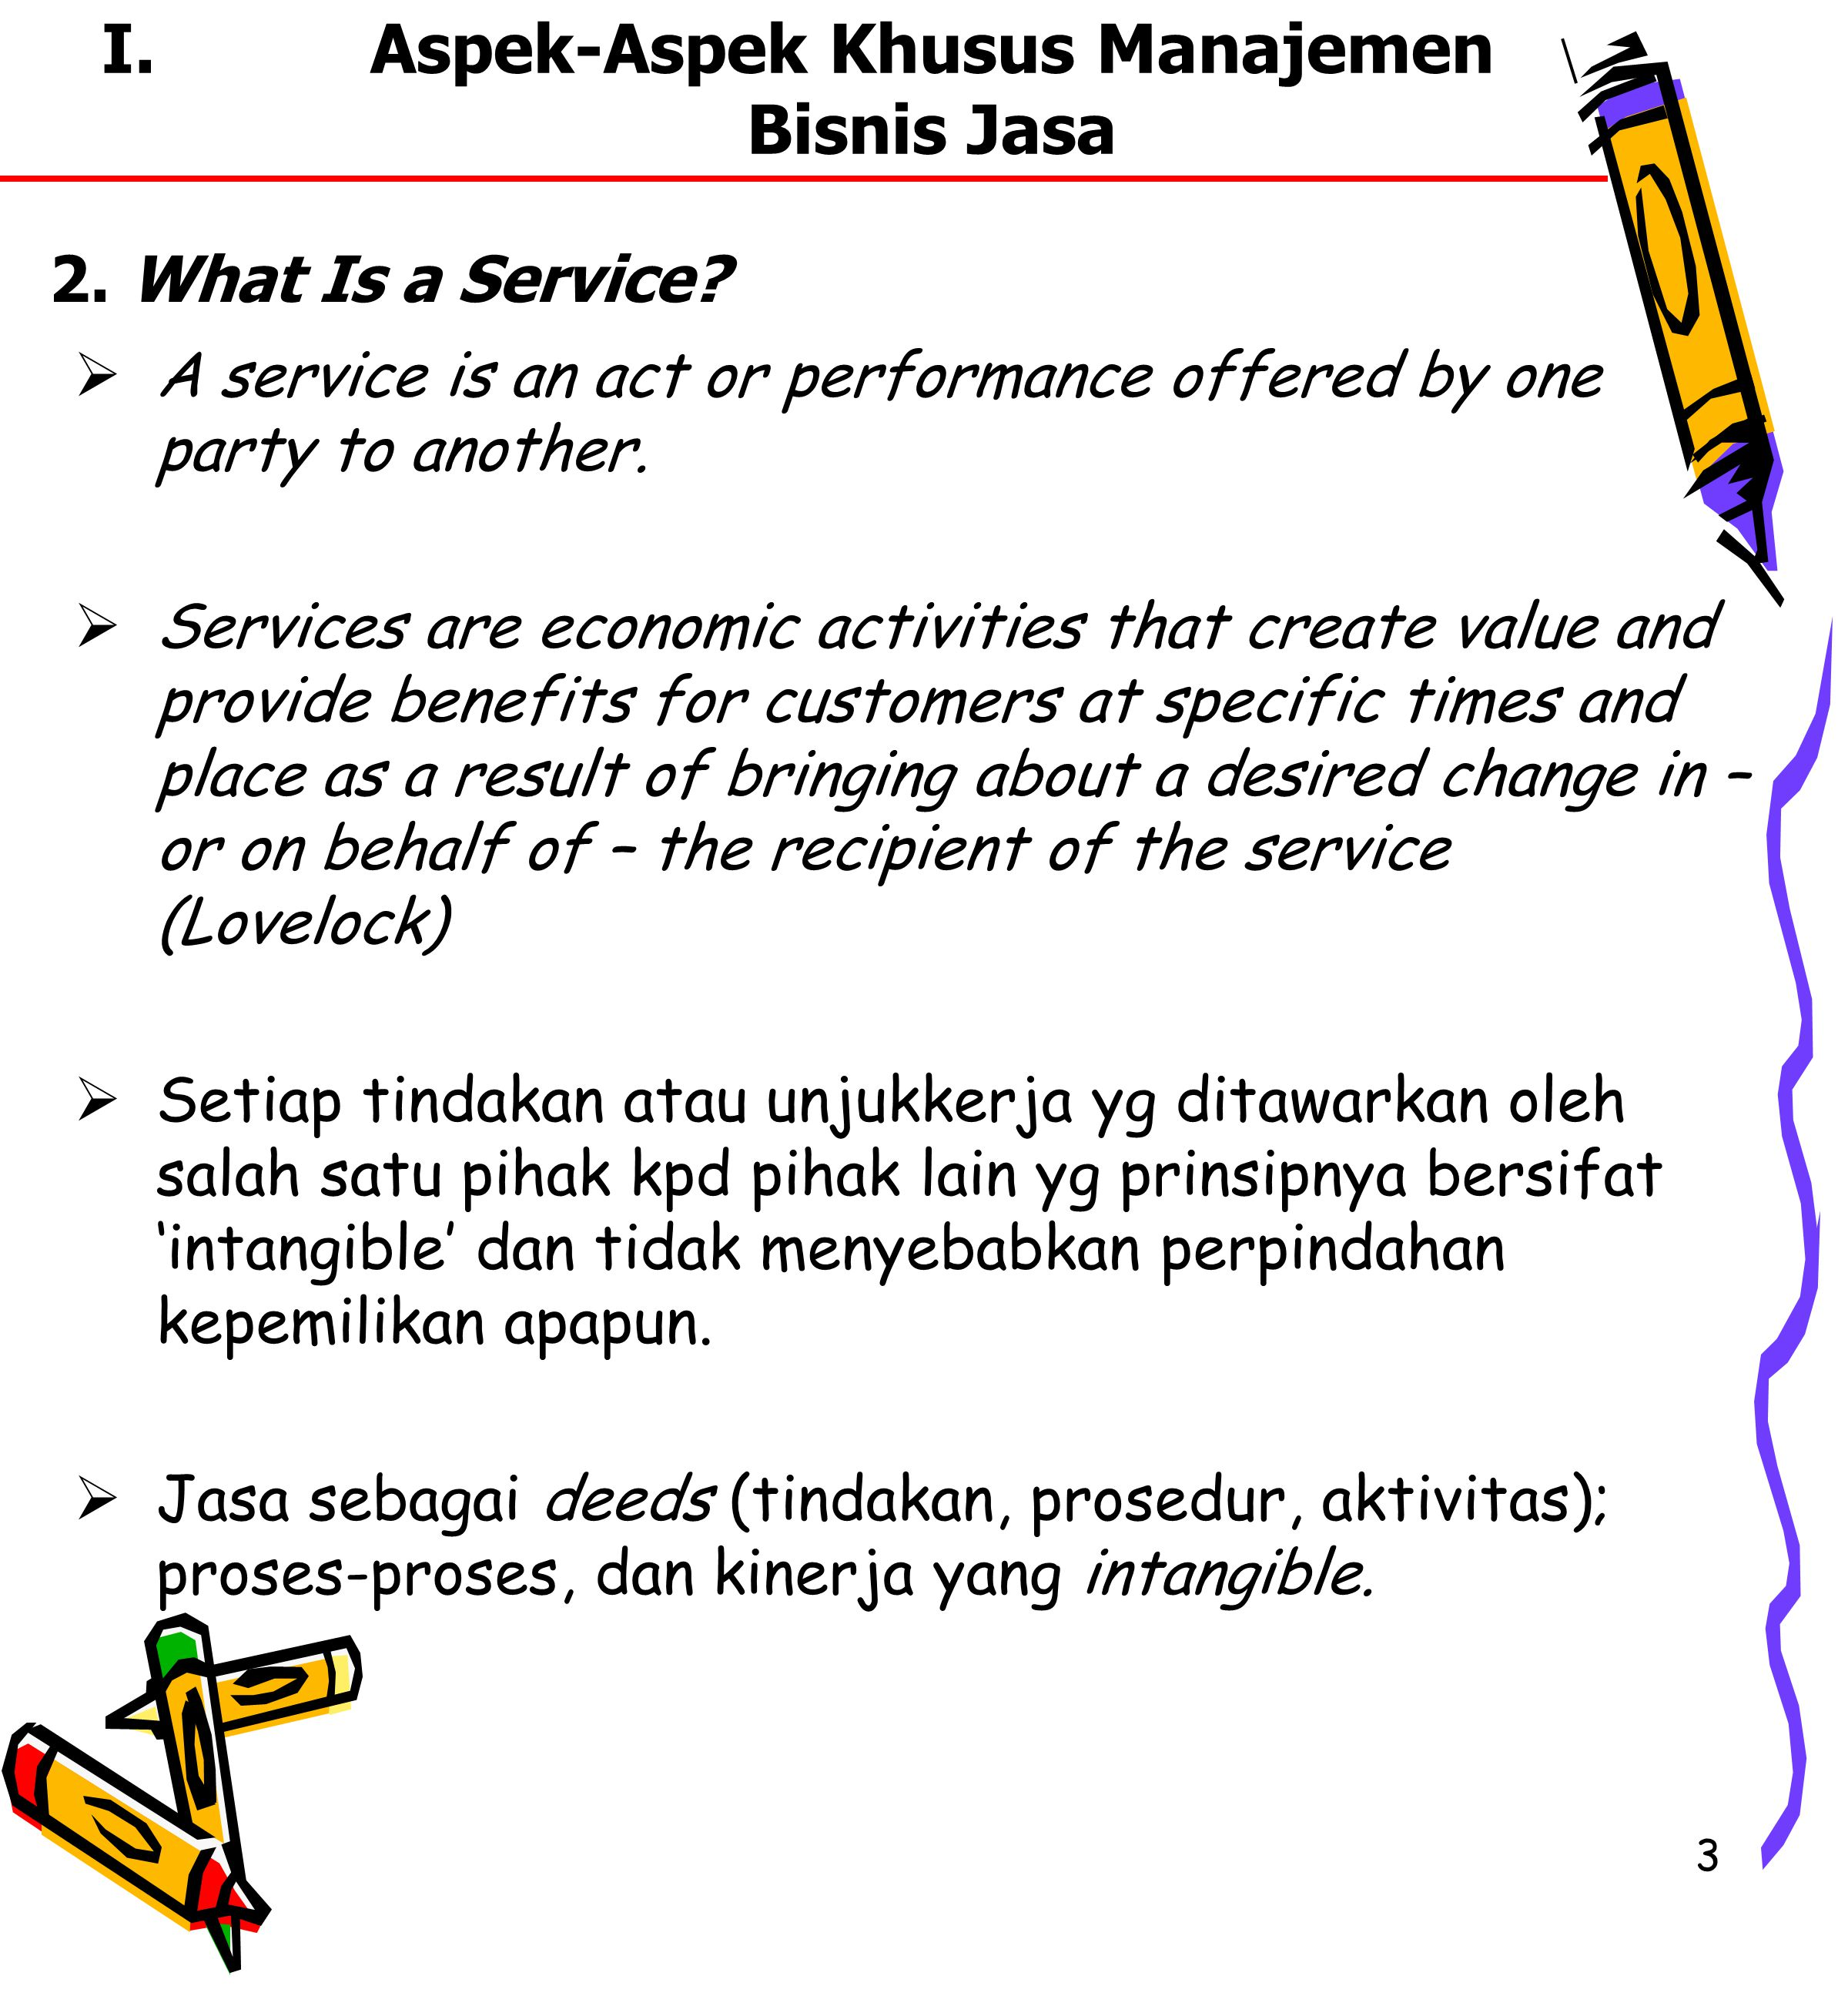 3 I.Aspek-Aspek Khusus Manajemen Bisnis Jasa  A service is an act or performance offered by one party to another.